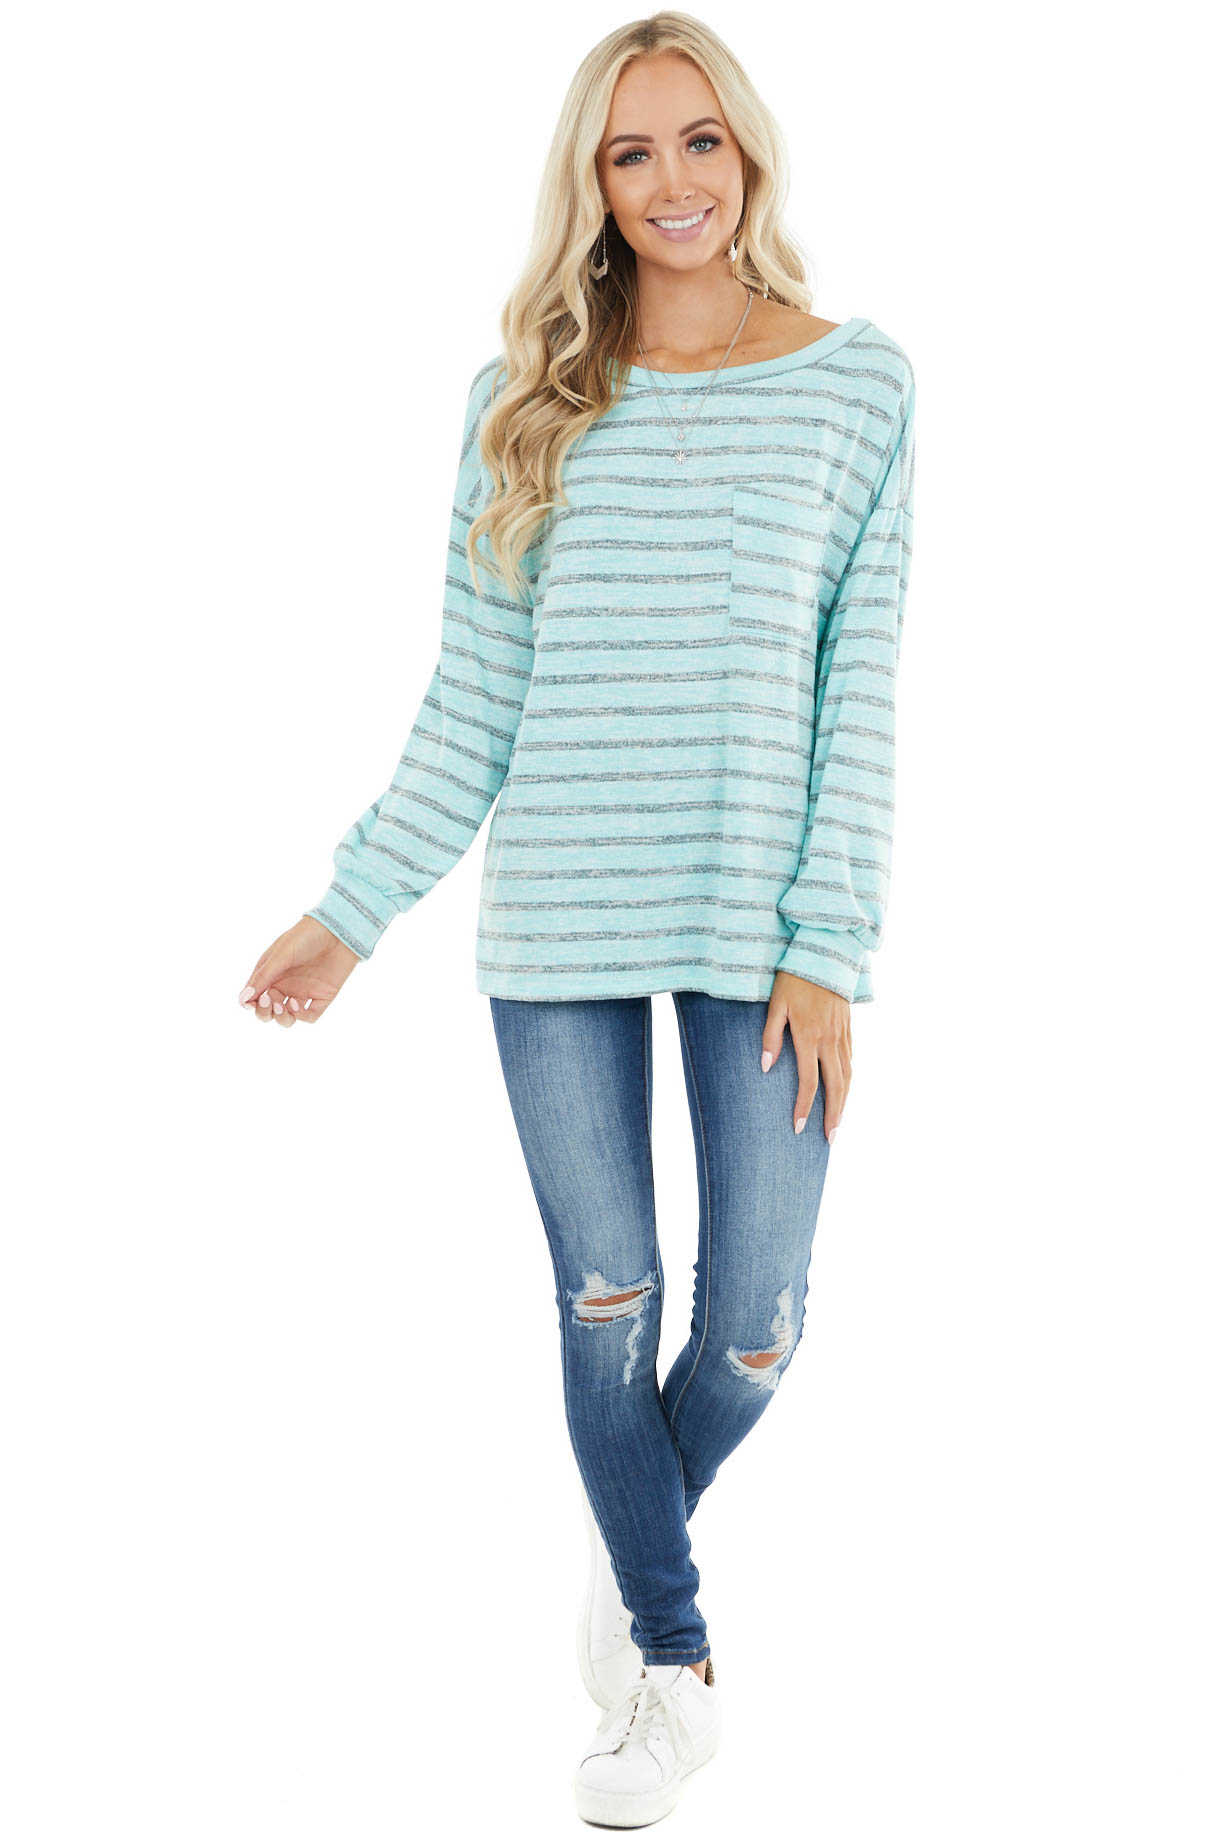 Aqua and Grey Striped Long Sleeve Knit Top with Chest Pocket